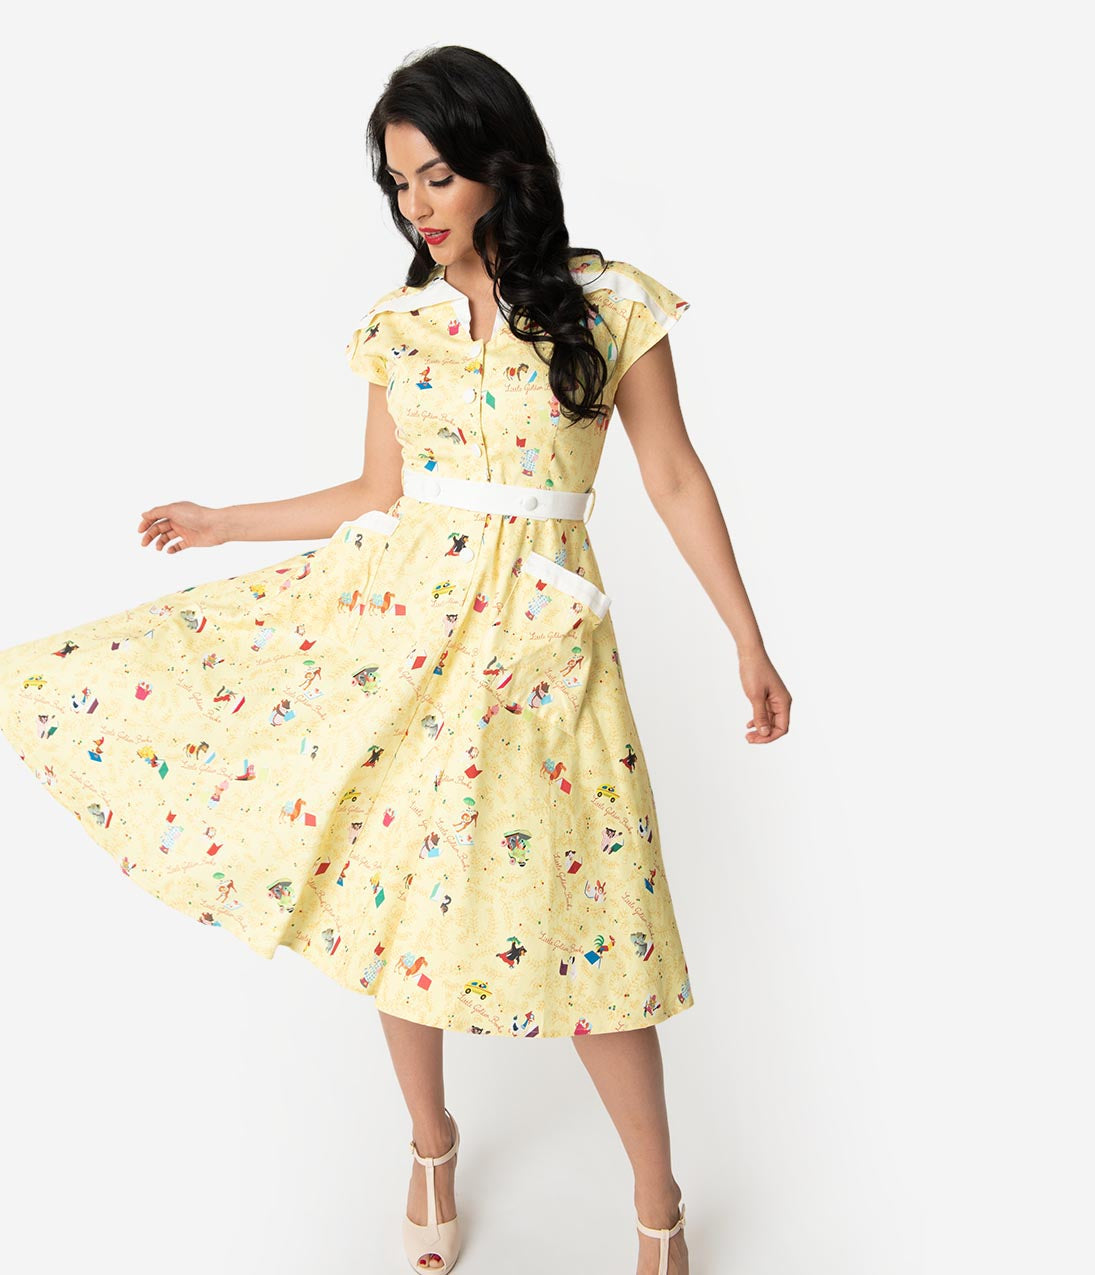 1940s Fashion Advice for Short Women Little Golden Books X Unique Vintage Yellow Print Hedda Swing Dress $148.00 AT vintagedancer.com